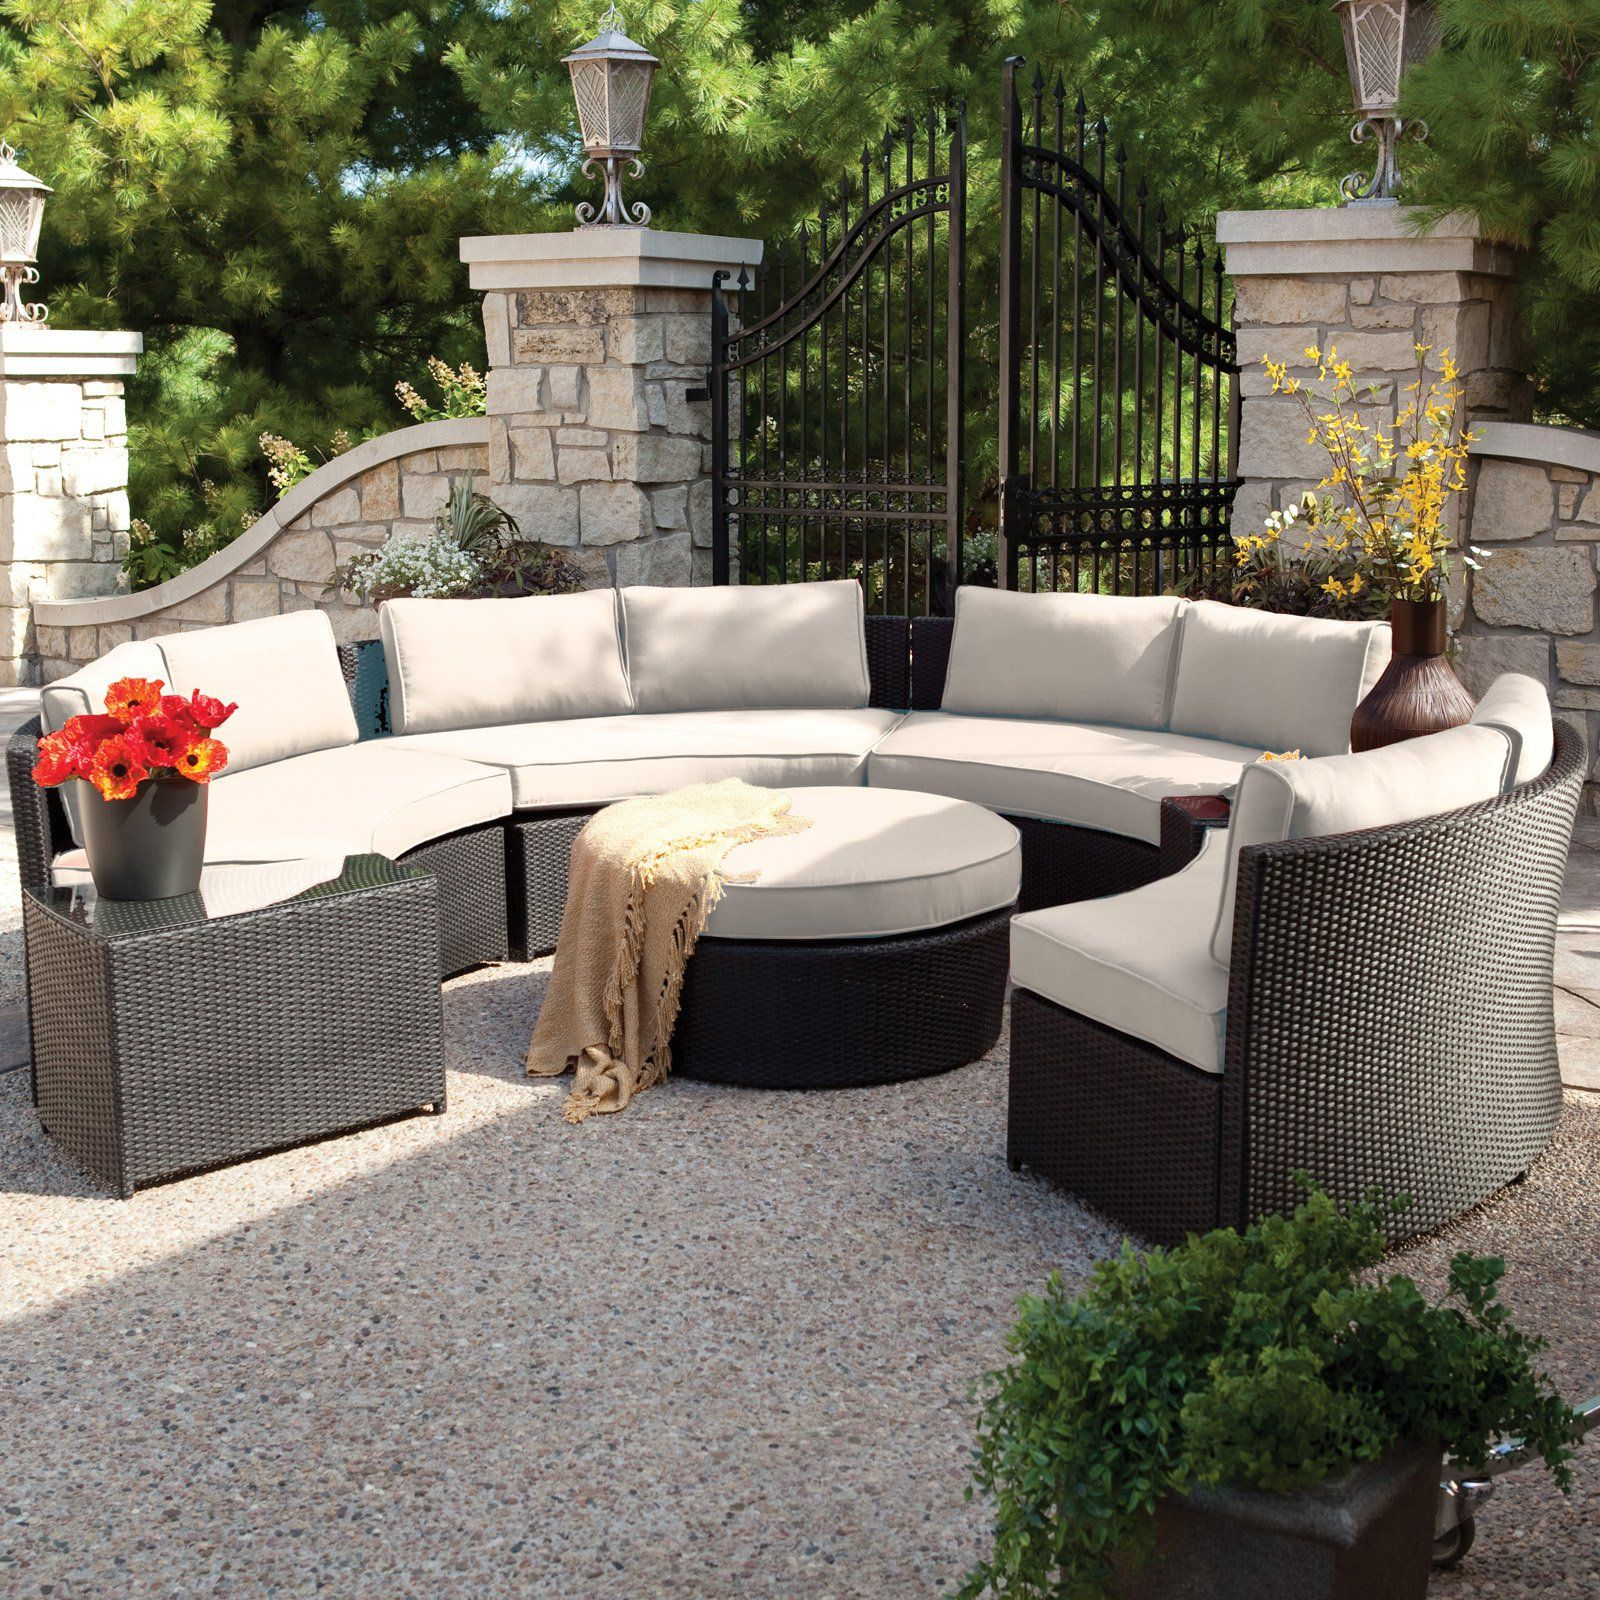 Exterior White Fabric Top Seat Decorate Patio Furniture Ideas First Class  Outdoor Sectional Furniture Assorted Inspiration Furniture Awe Inspiring  Circled ... Part 81